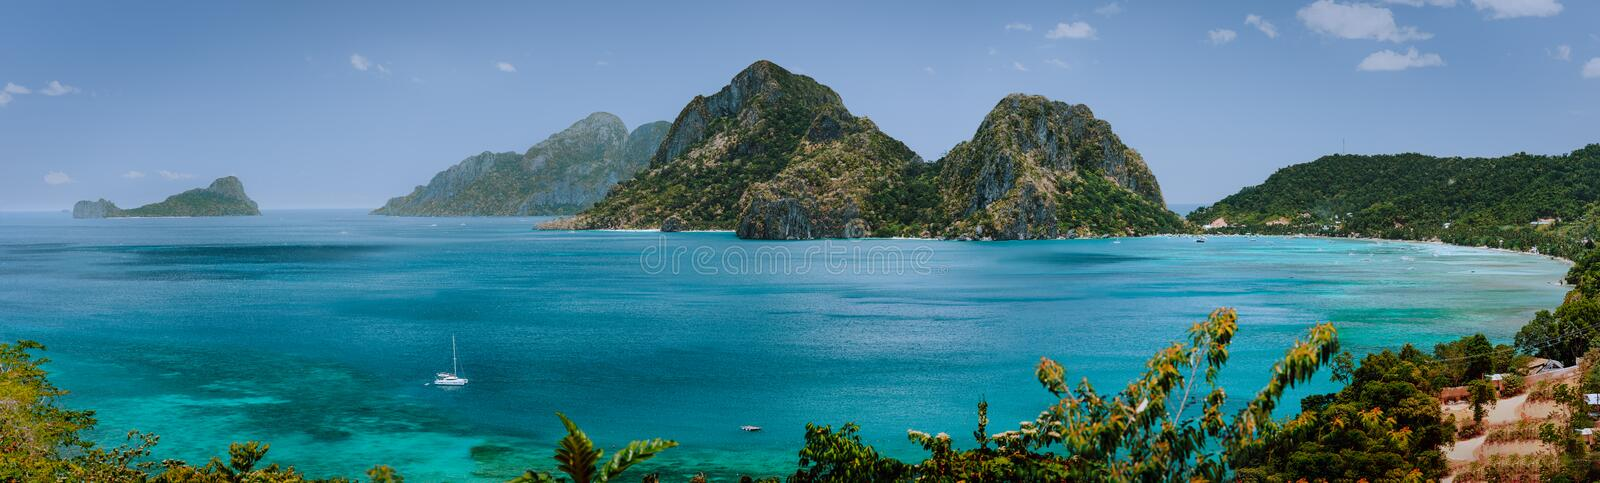 Corong Corong Beach, El Nido, Palawan, Philippines amazing nature, panorama view from above. Tropical evergreen islands royalty free stock photo